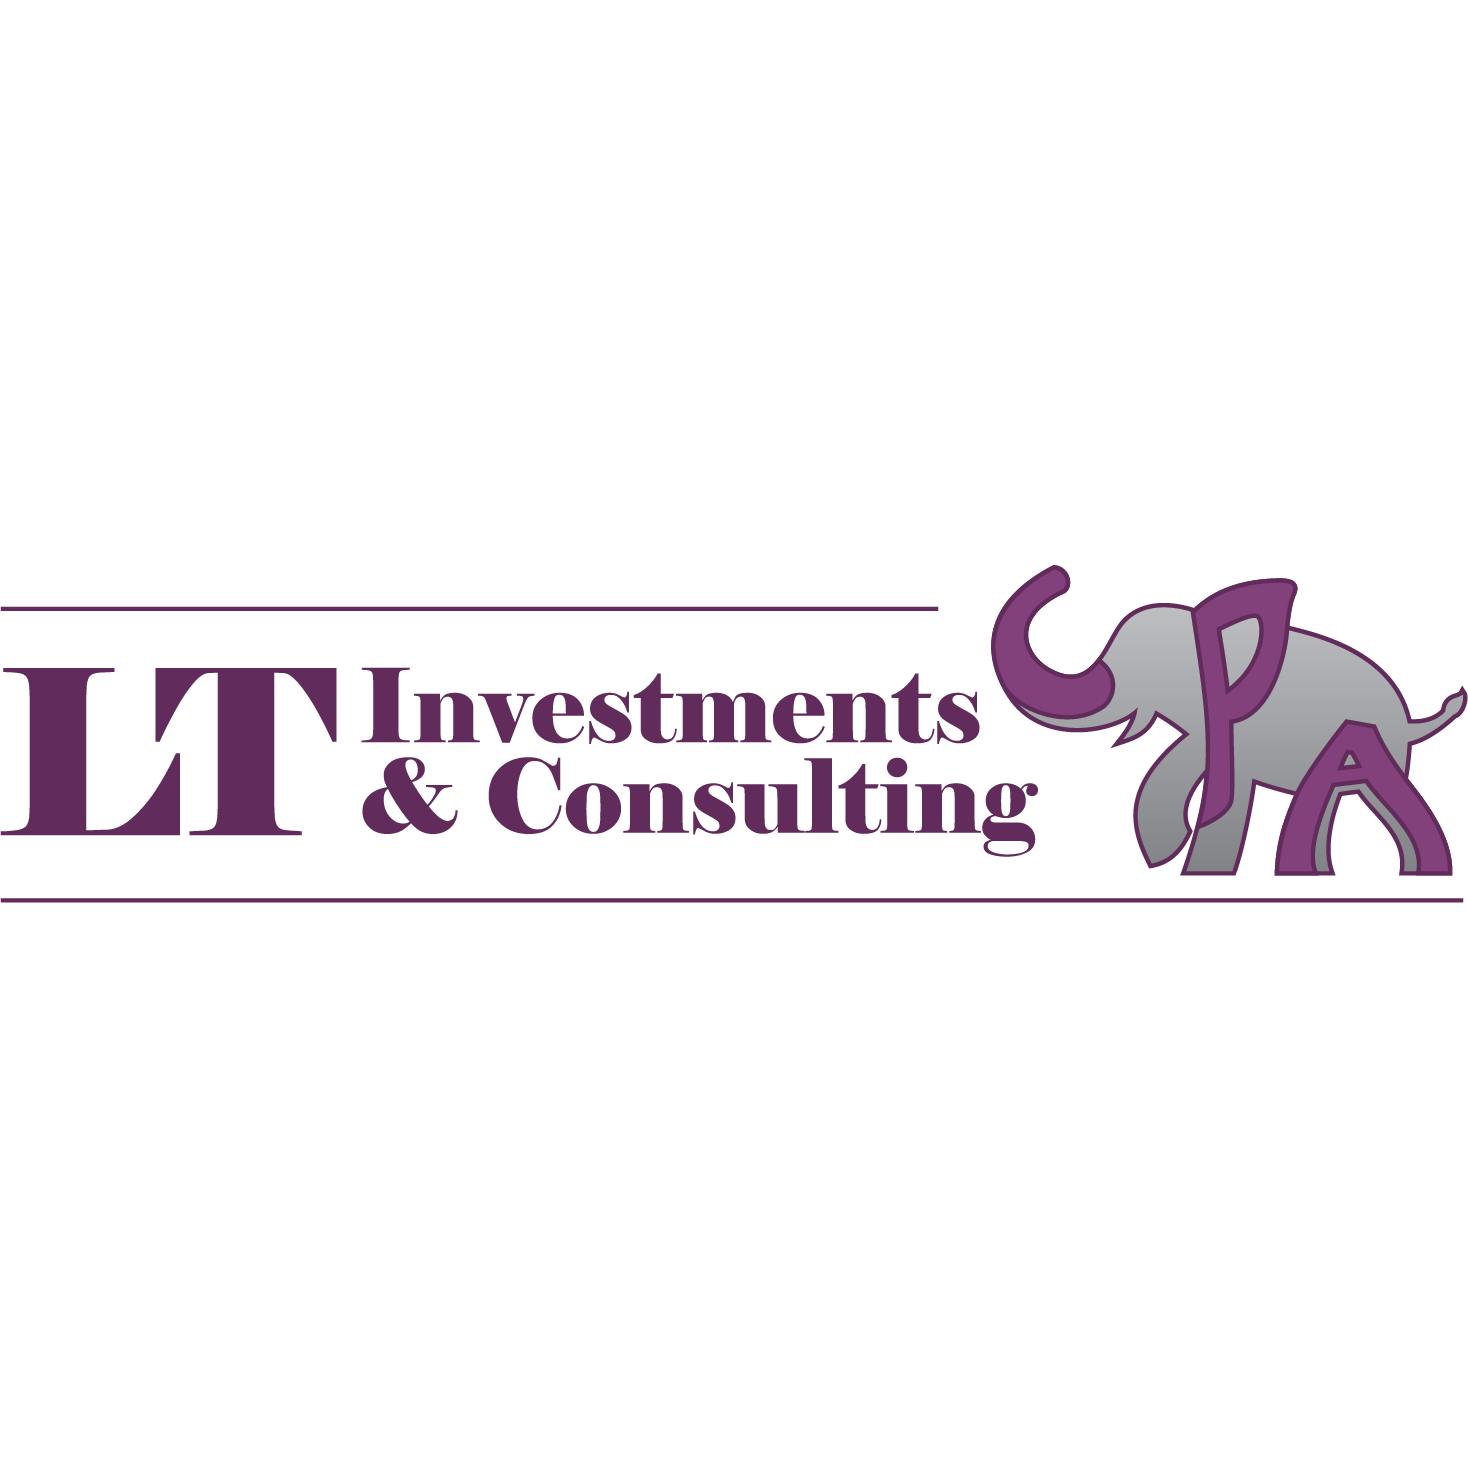 LT Investments & Consulting